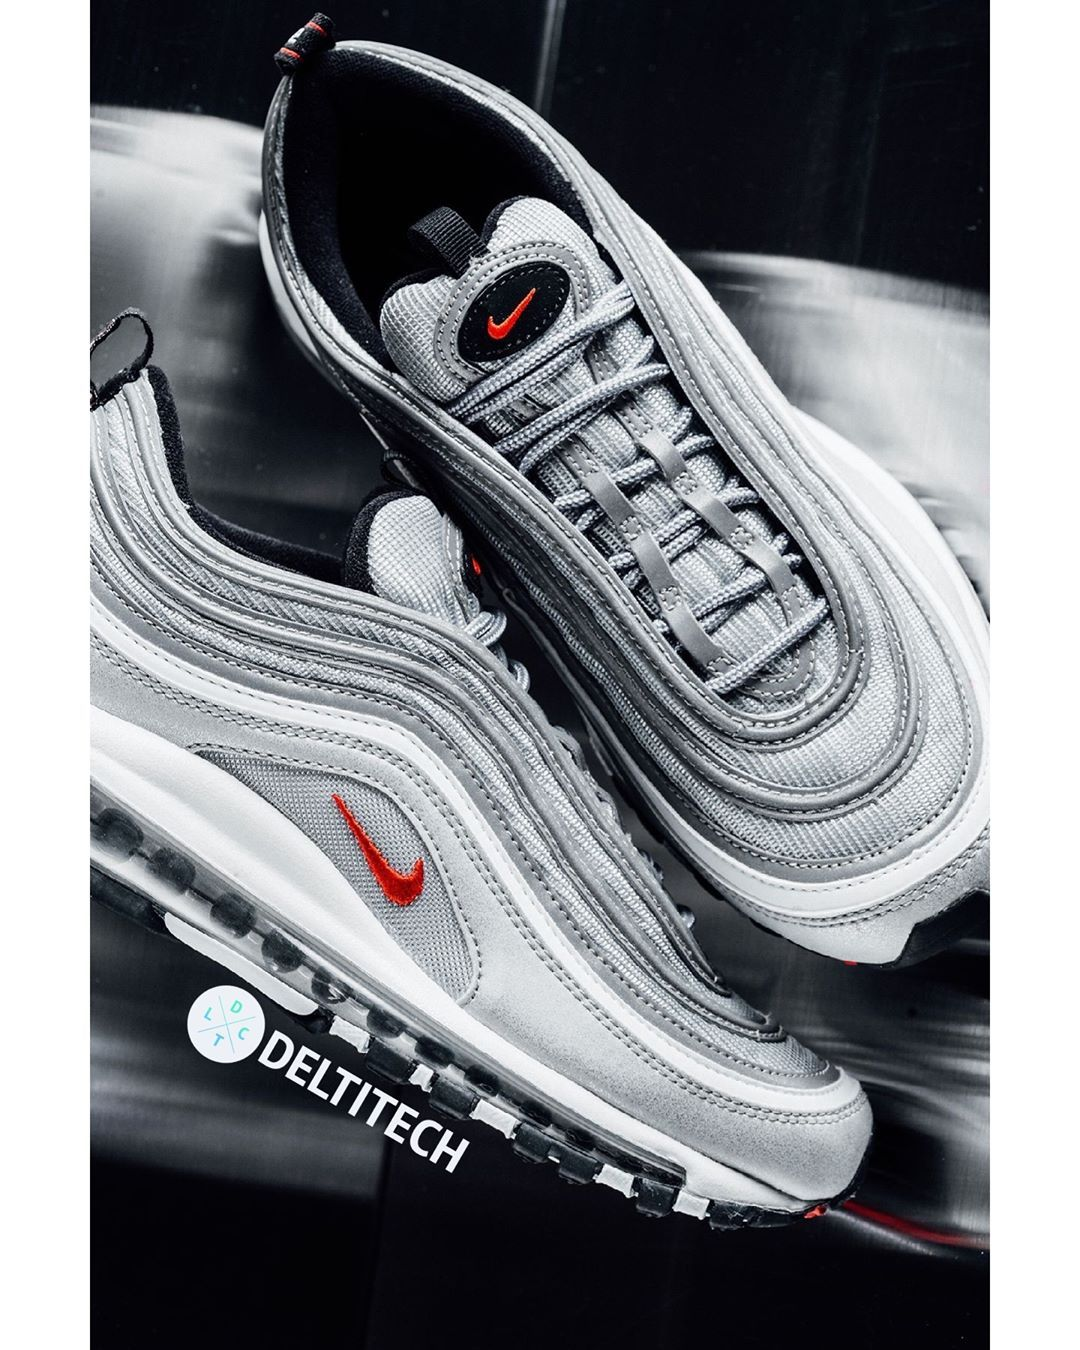 Deltitech Brands On Instagram Nike Air Max 97 Silver Bullet Go Grab Your Colorway Online Deltitechbrand Nike Air Max 97 Nike Boots Adidas Shoes Outlet